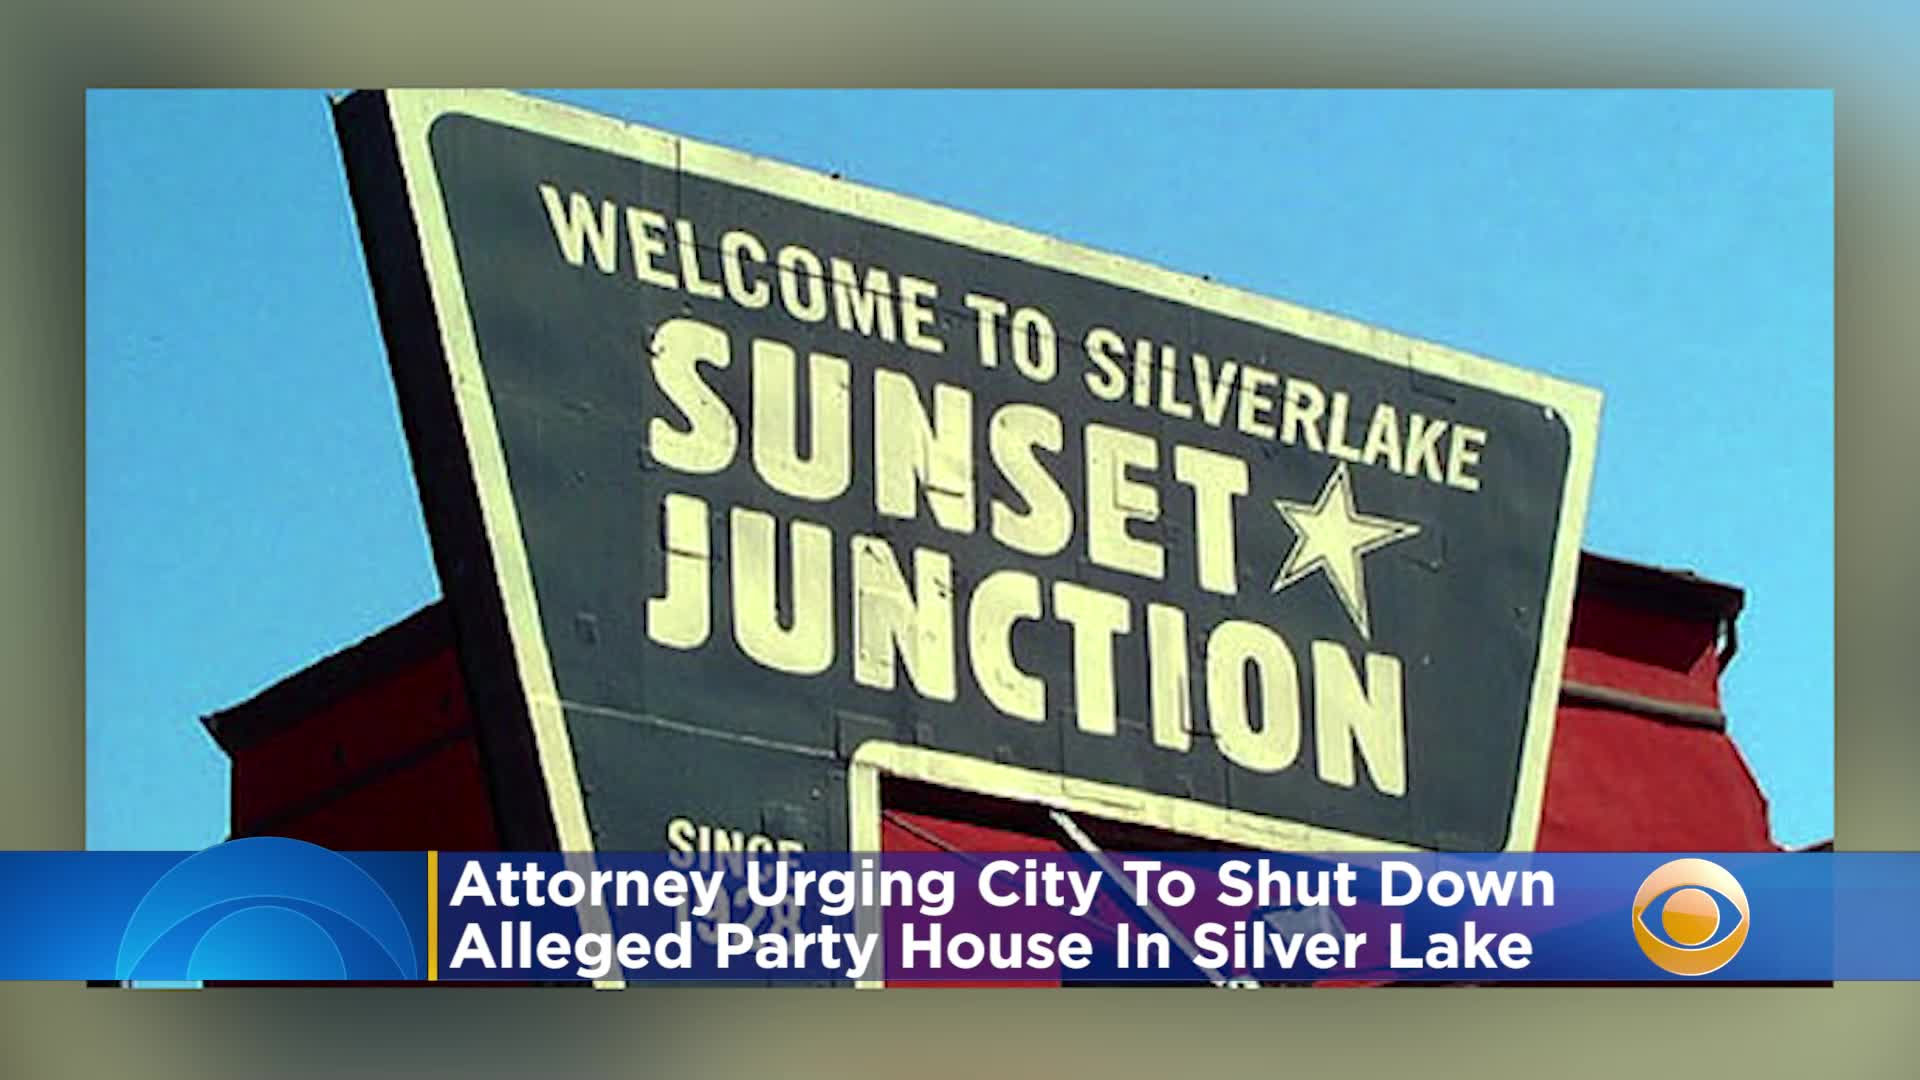 news.yahoo.com: Attorney Urges City Of LA To Shut Down Alleged Party House In Silver Lake